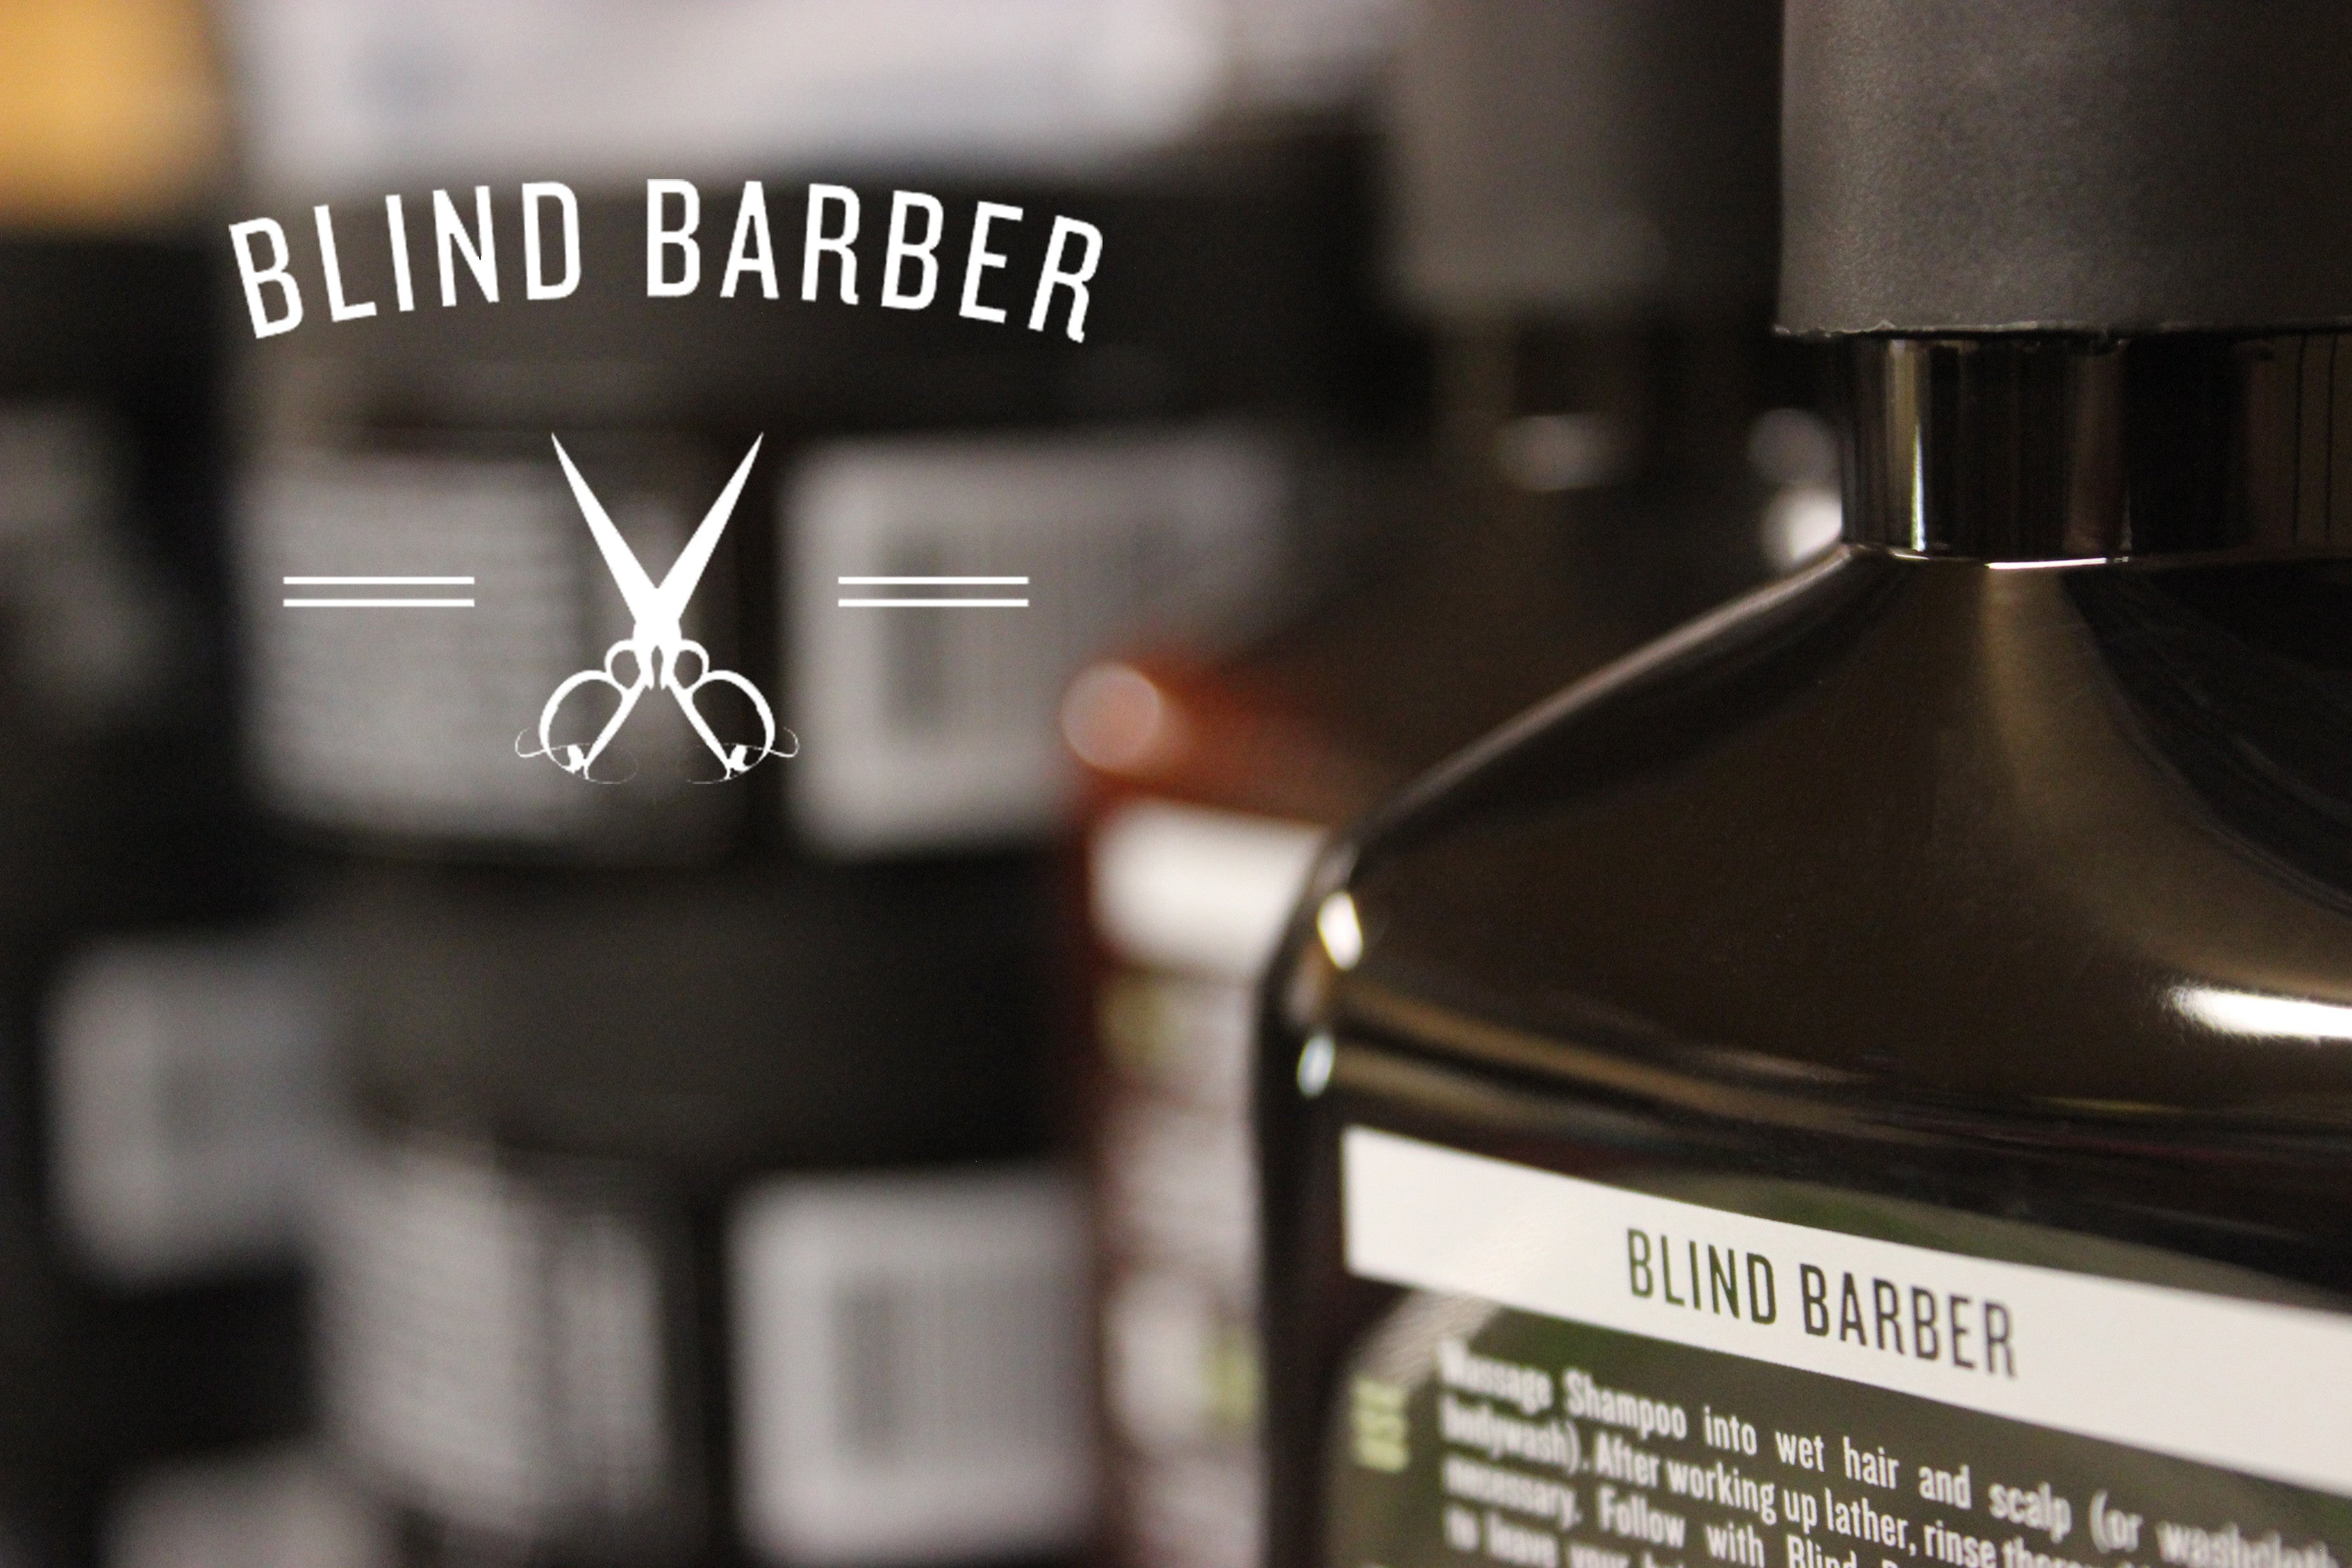 Blind Barber products available at Mr. Pomade